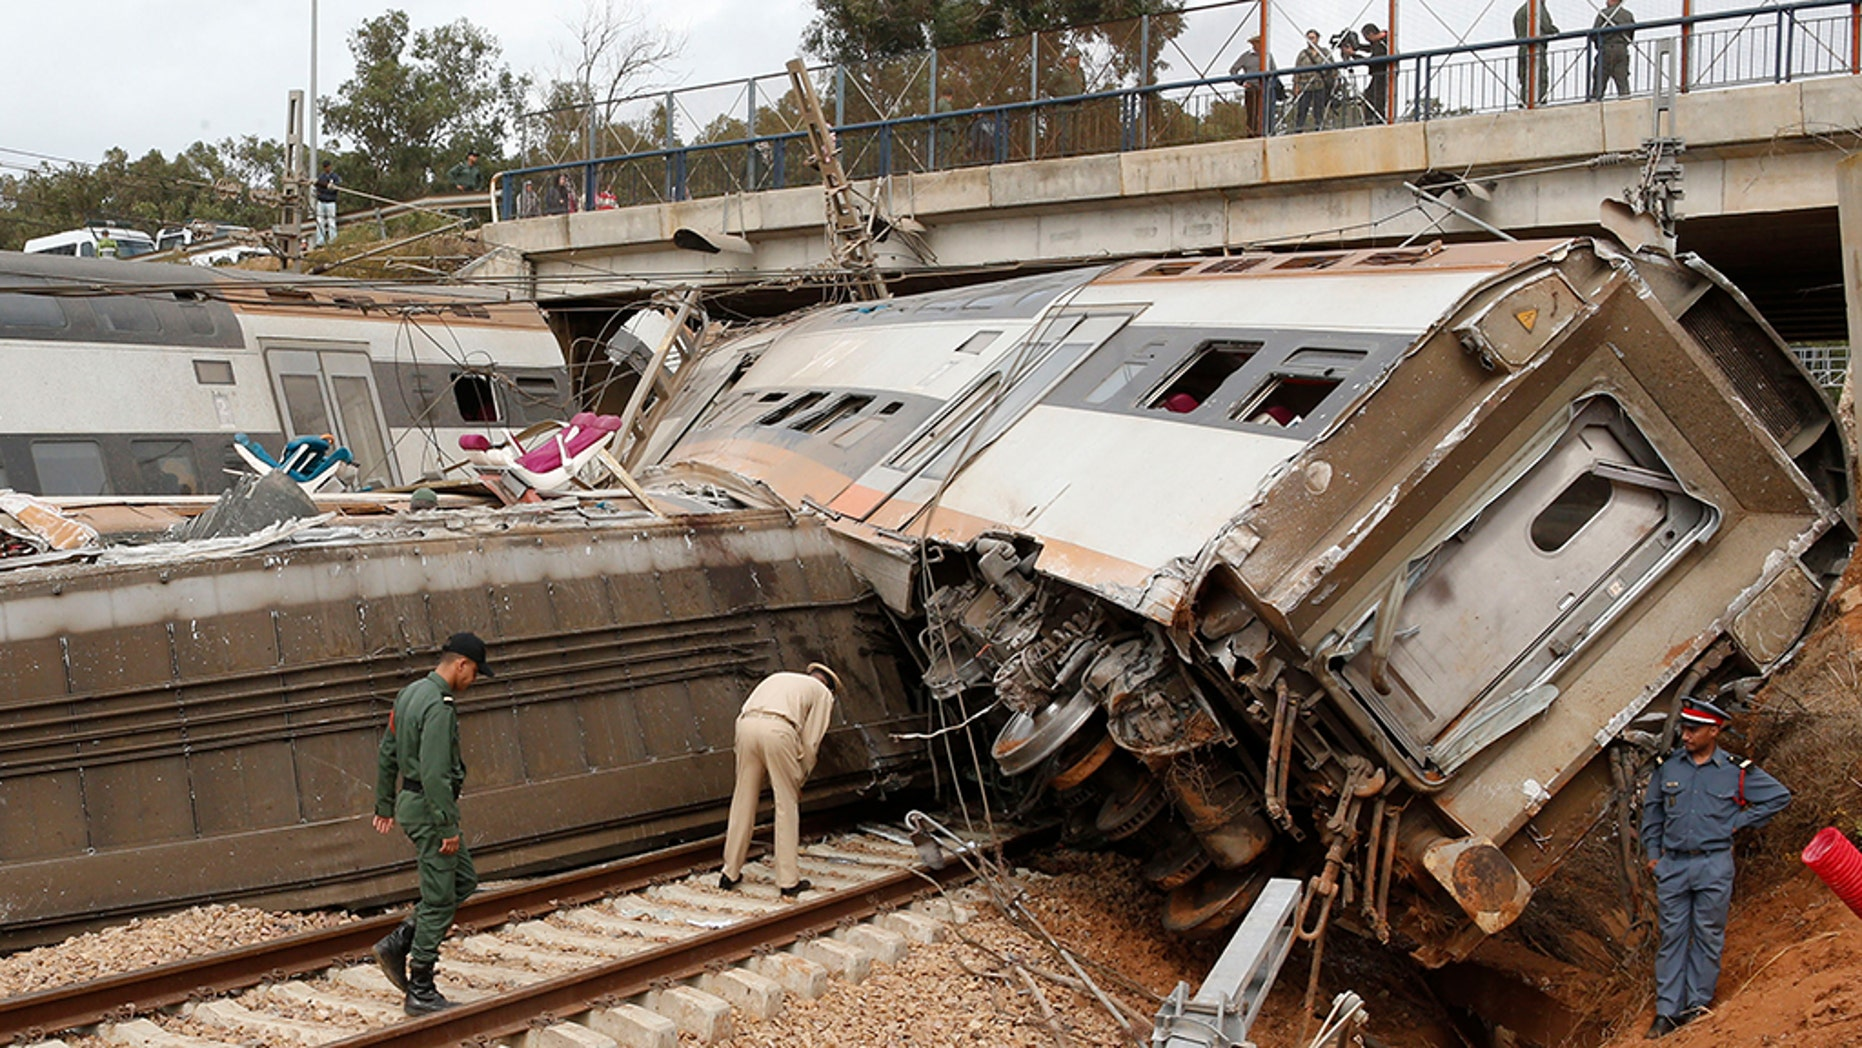 A police officer and train workers standing by a derailed train Tuesday near Sidi Bouknadel, Morocco.